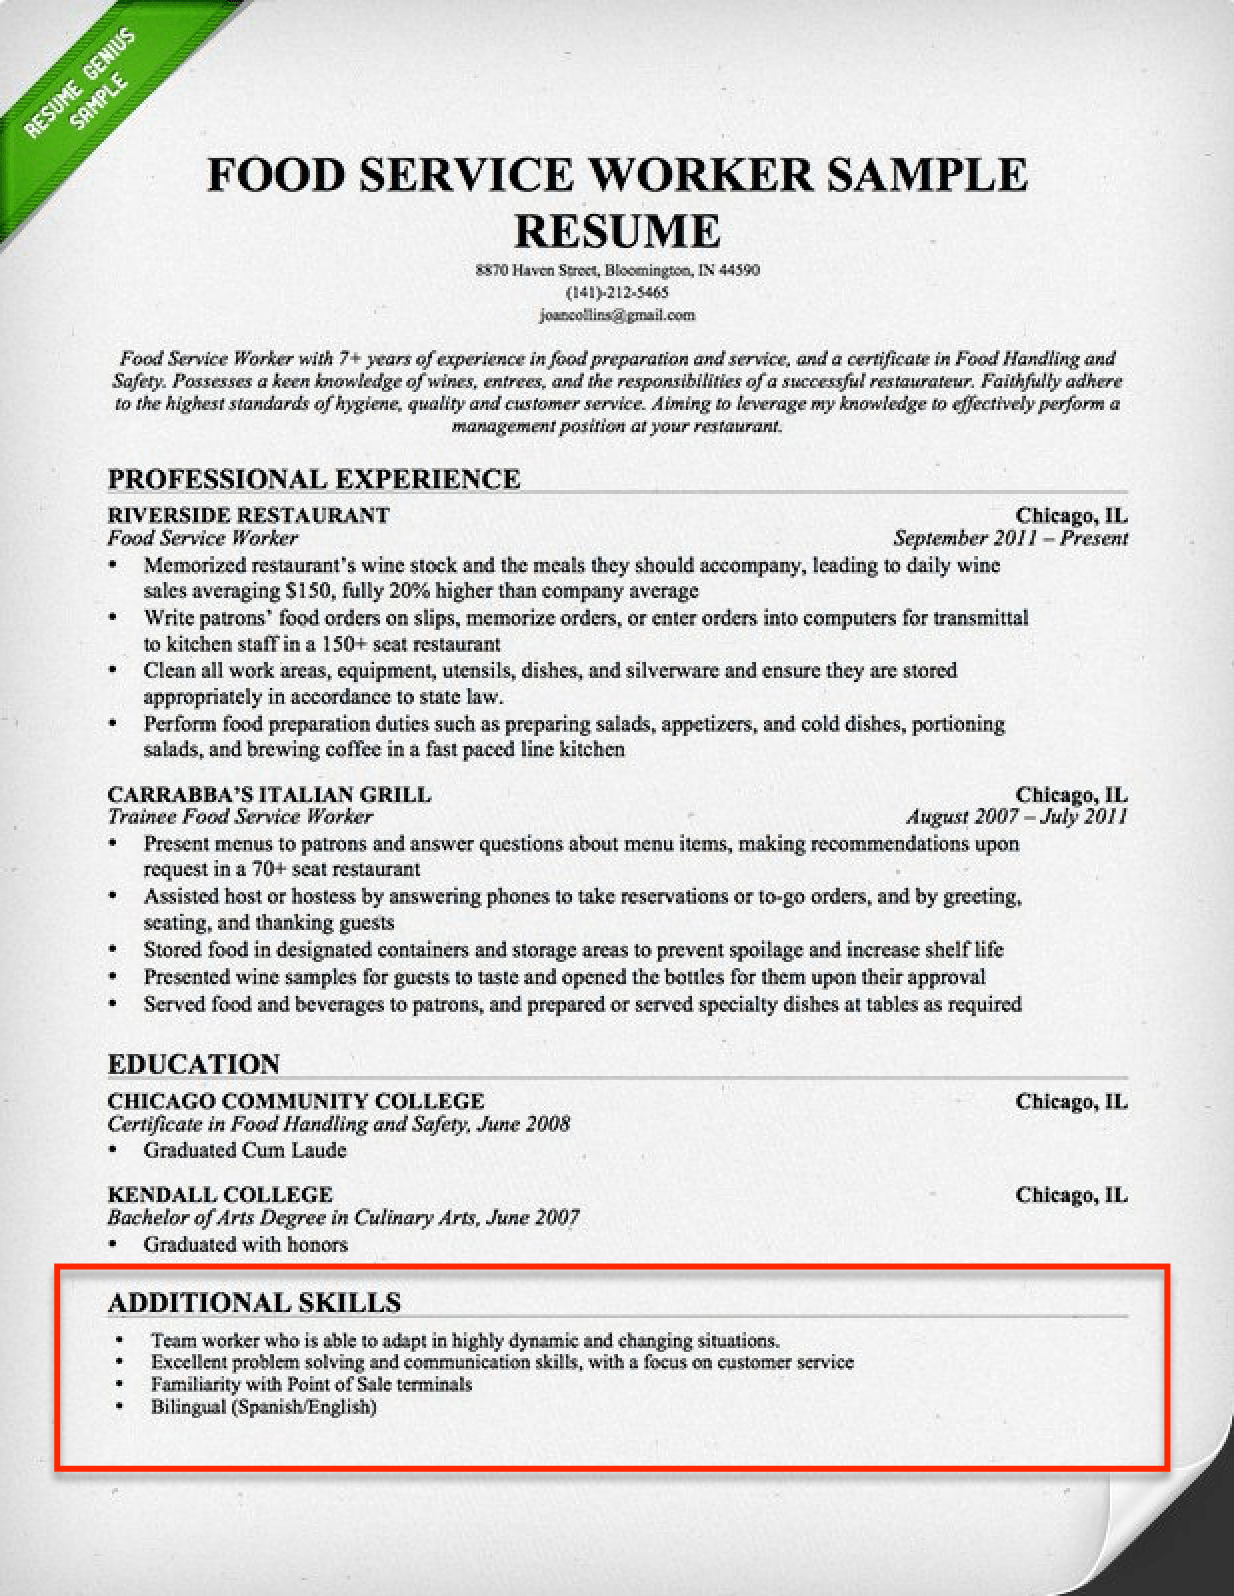 Sample Resume Language Skills Resume Skills Section 250 43 Skills For Your Resume